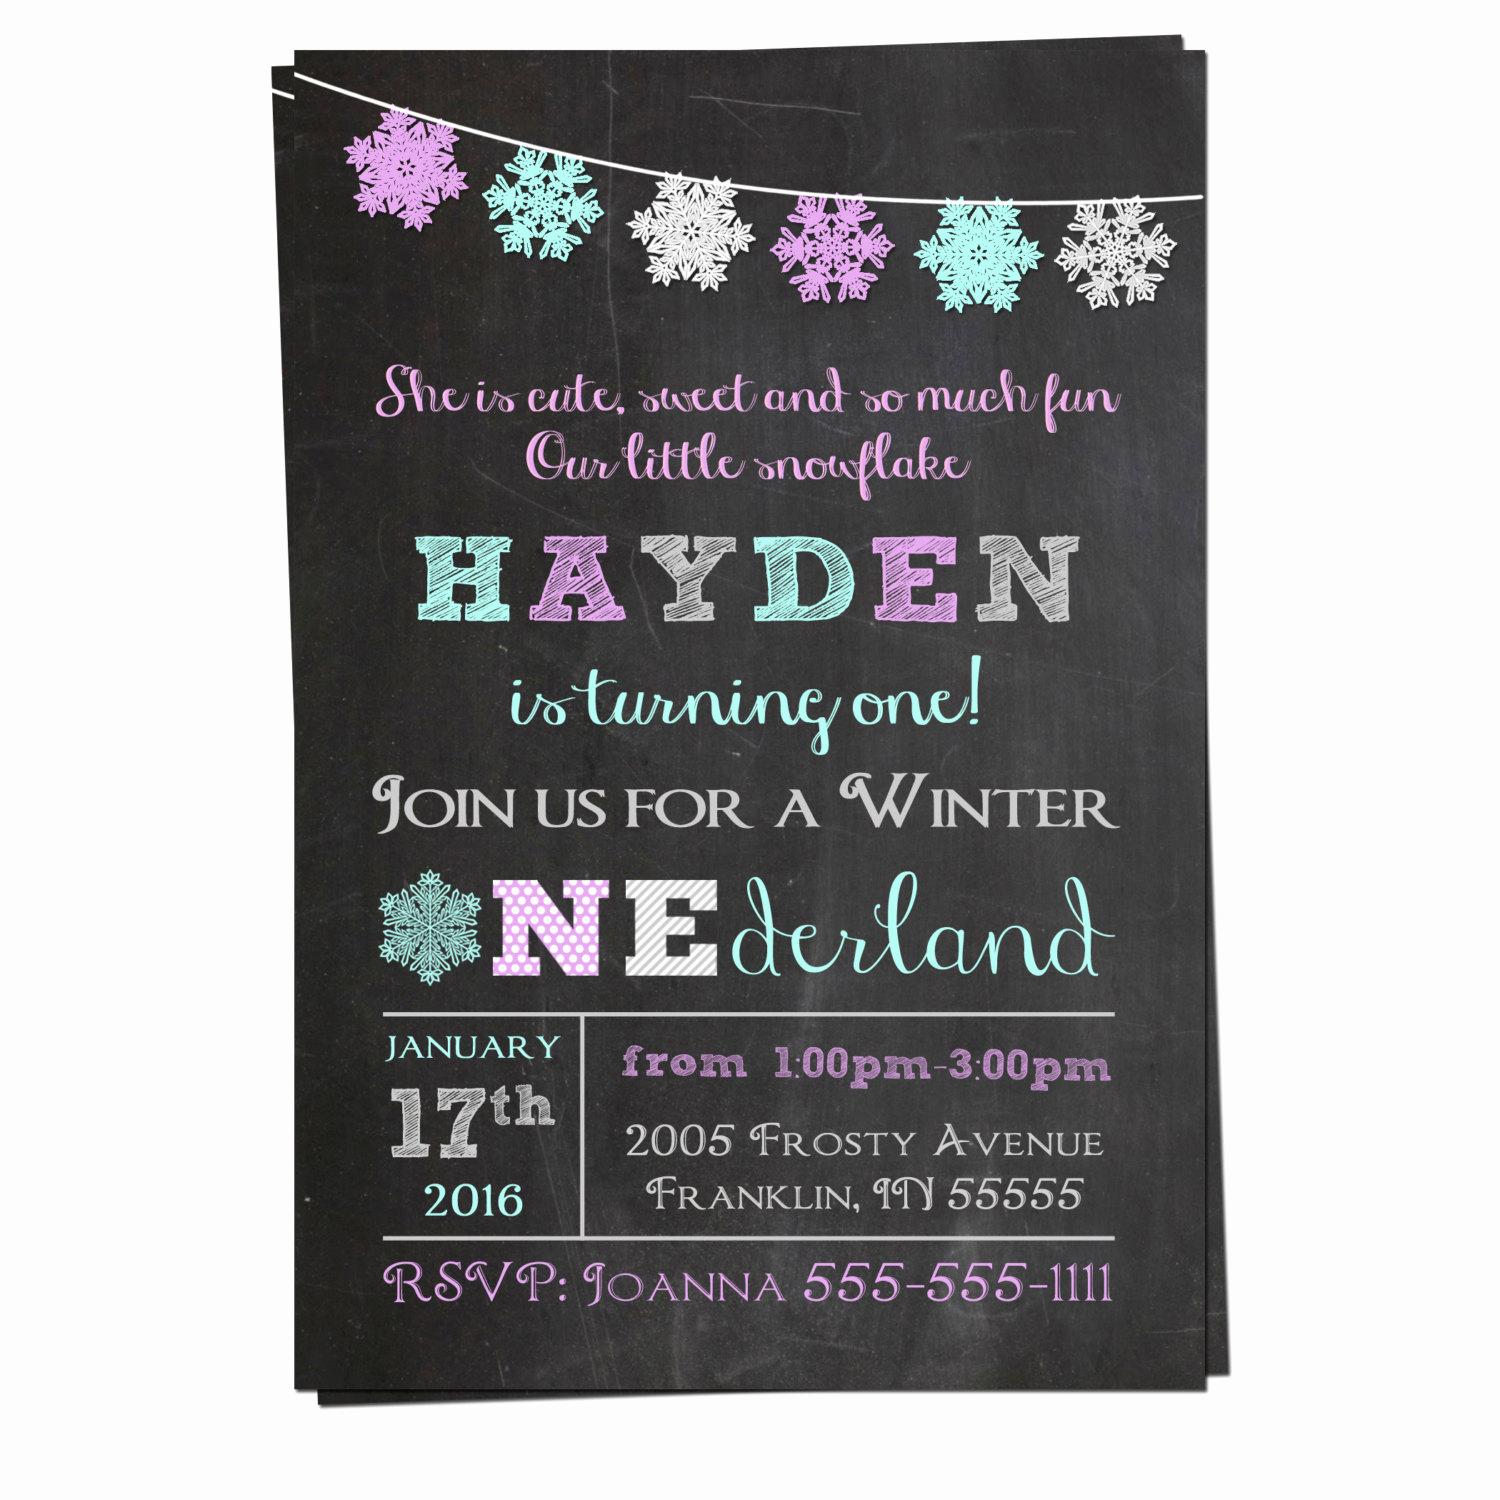 Winter Wonderland Invitation Ideas Beautiful Winter Onederland Invitation Winter Wonderland Invitation